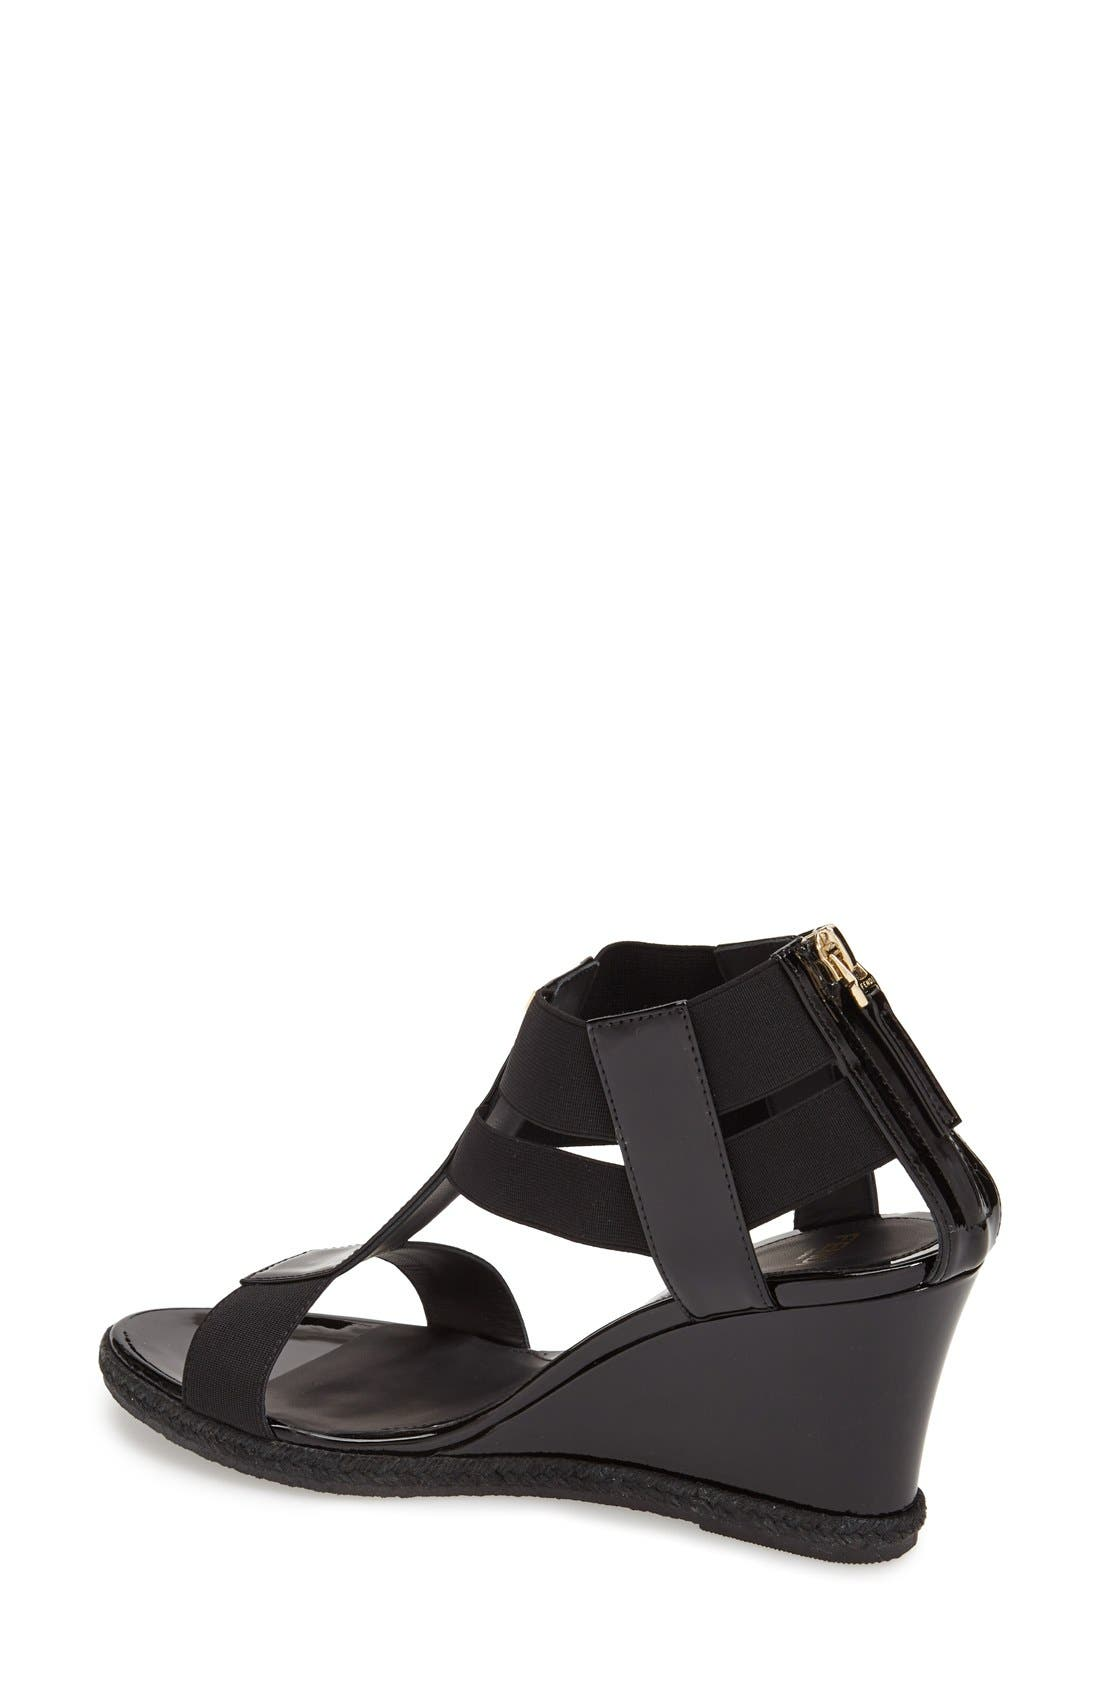 Alternate Image 2  - Fendi 'Carioca' Wedge Sandal (Women)